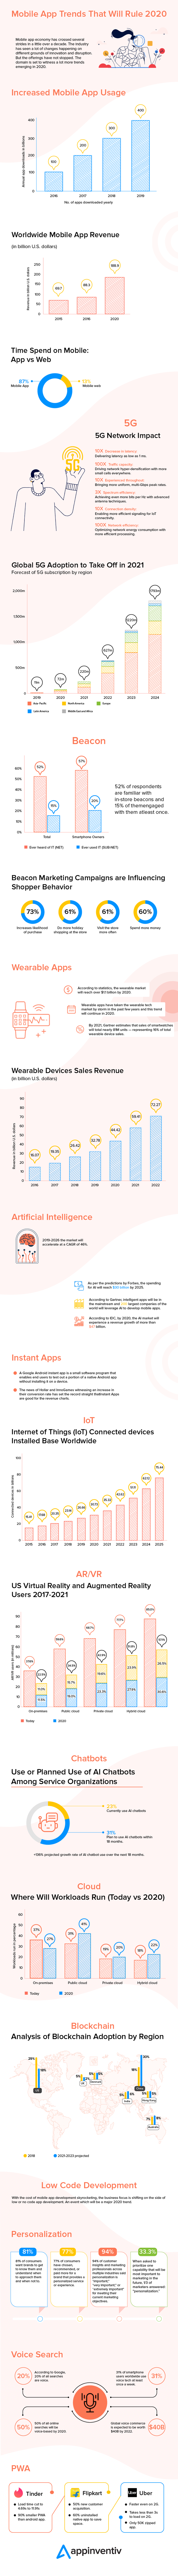 infographic-mobile app trends 2020